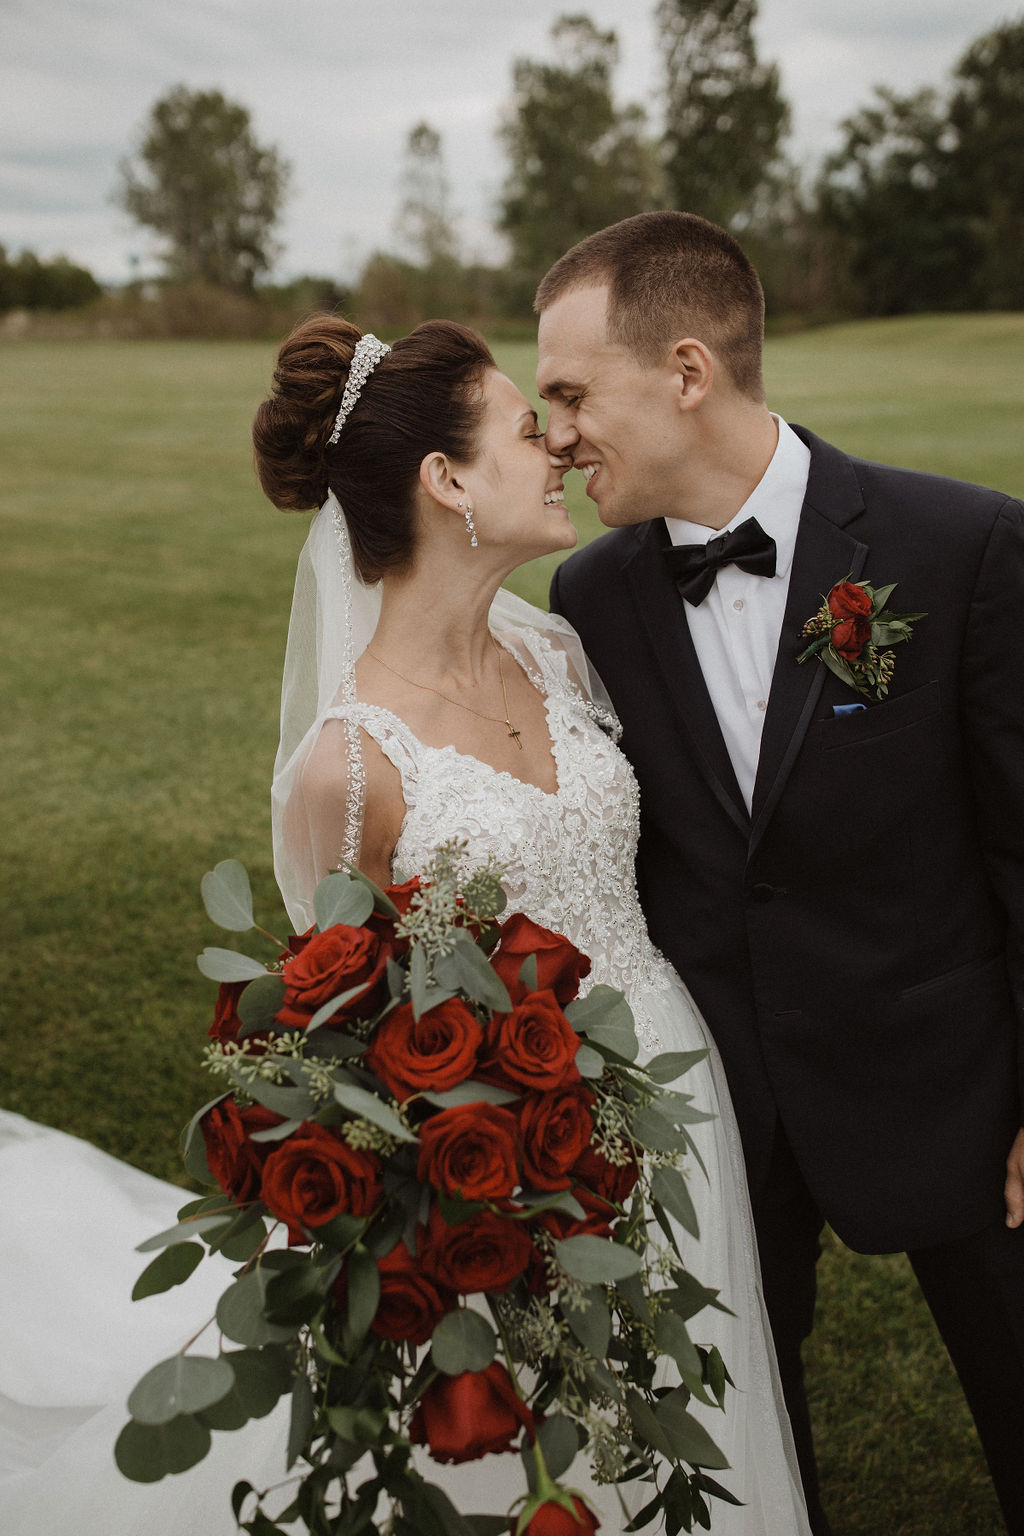 Groom Holding Real Bride While She Holds a Red Rose Bouquet